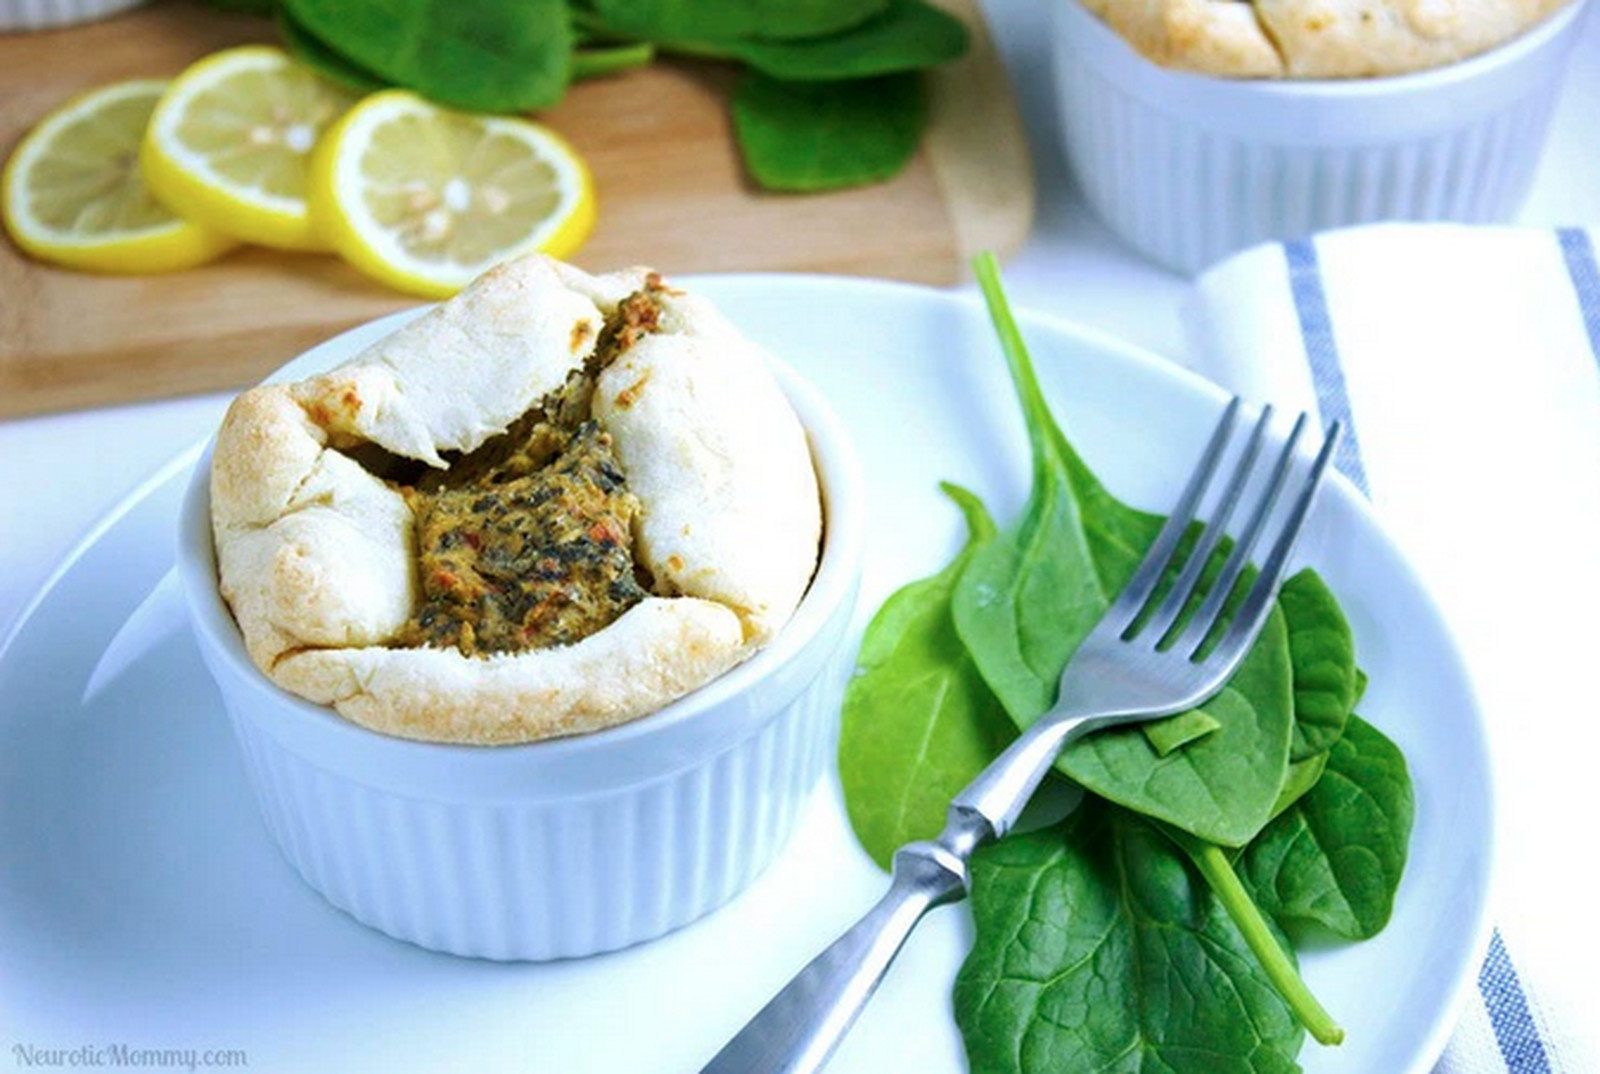 Vegan Spinach and Artichoke Soufflé